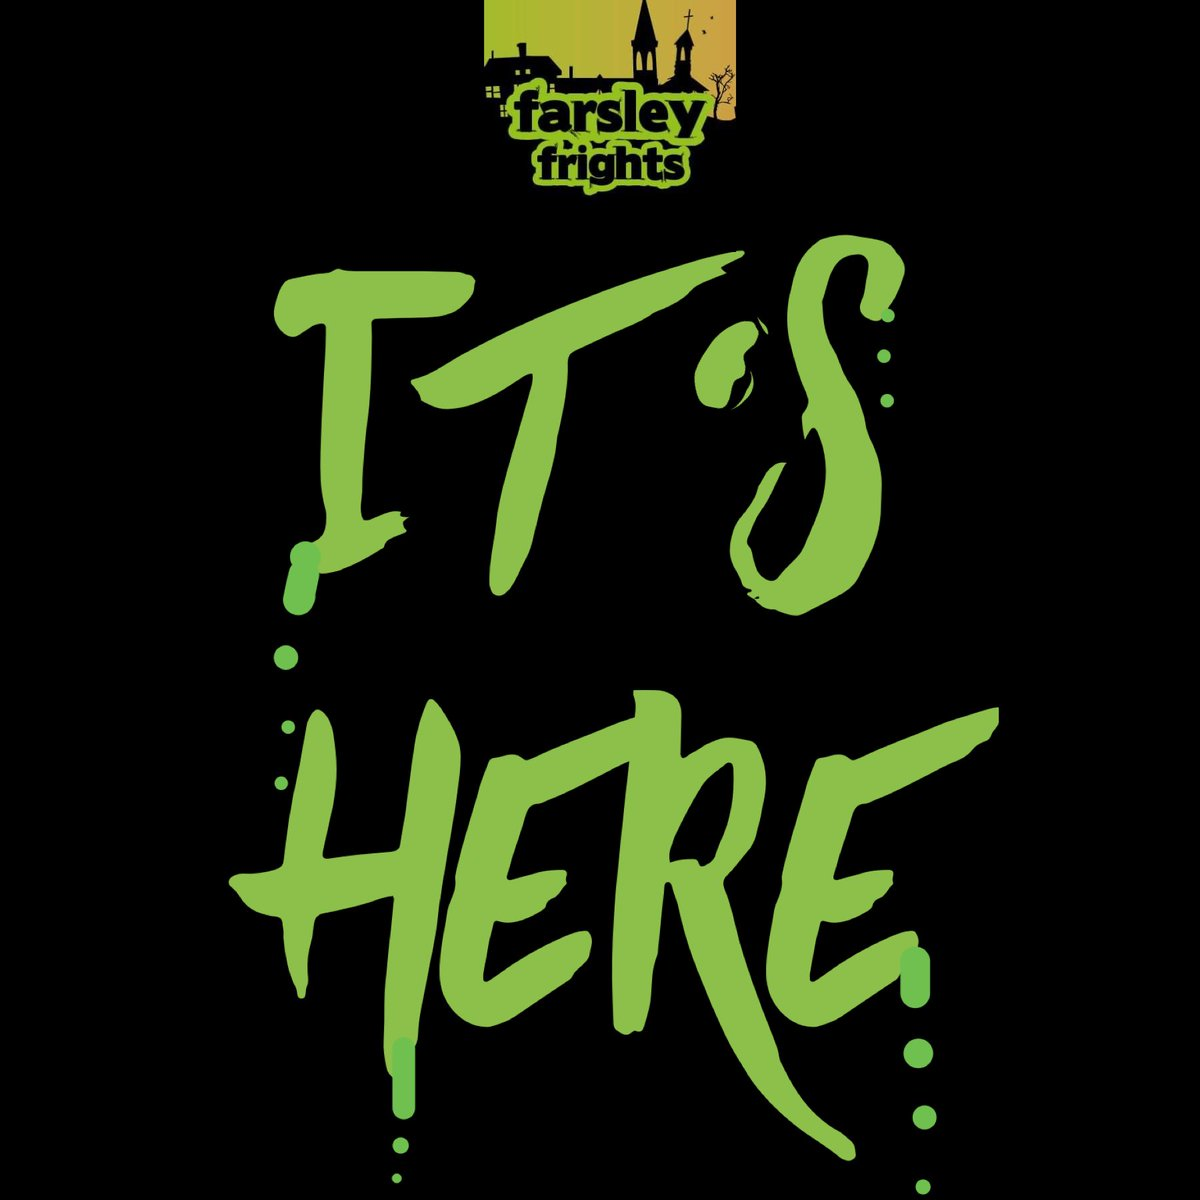 Walk our Farsley Frights trails, find the magic word and send it in to enter our prize draws   Send us your costume pictures to enter Best Costume or house pictures for Haunted House!  #farsley #halloween #leeds #halloweencostume #farsleyfrights #HalloweenAtHome #westleeds https://t.co/GIRRRtAU4h